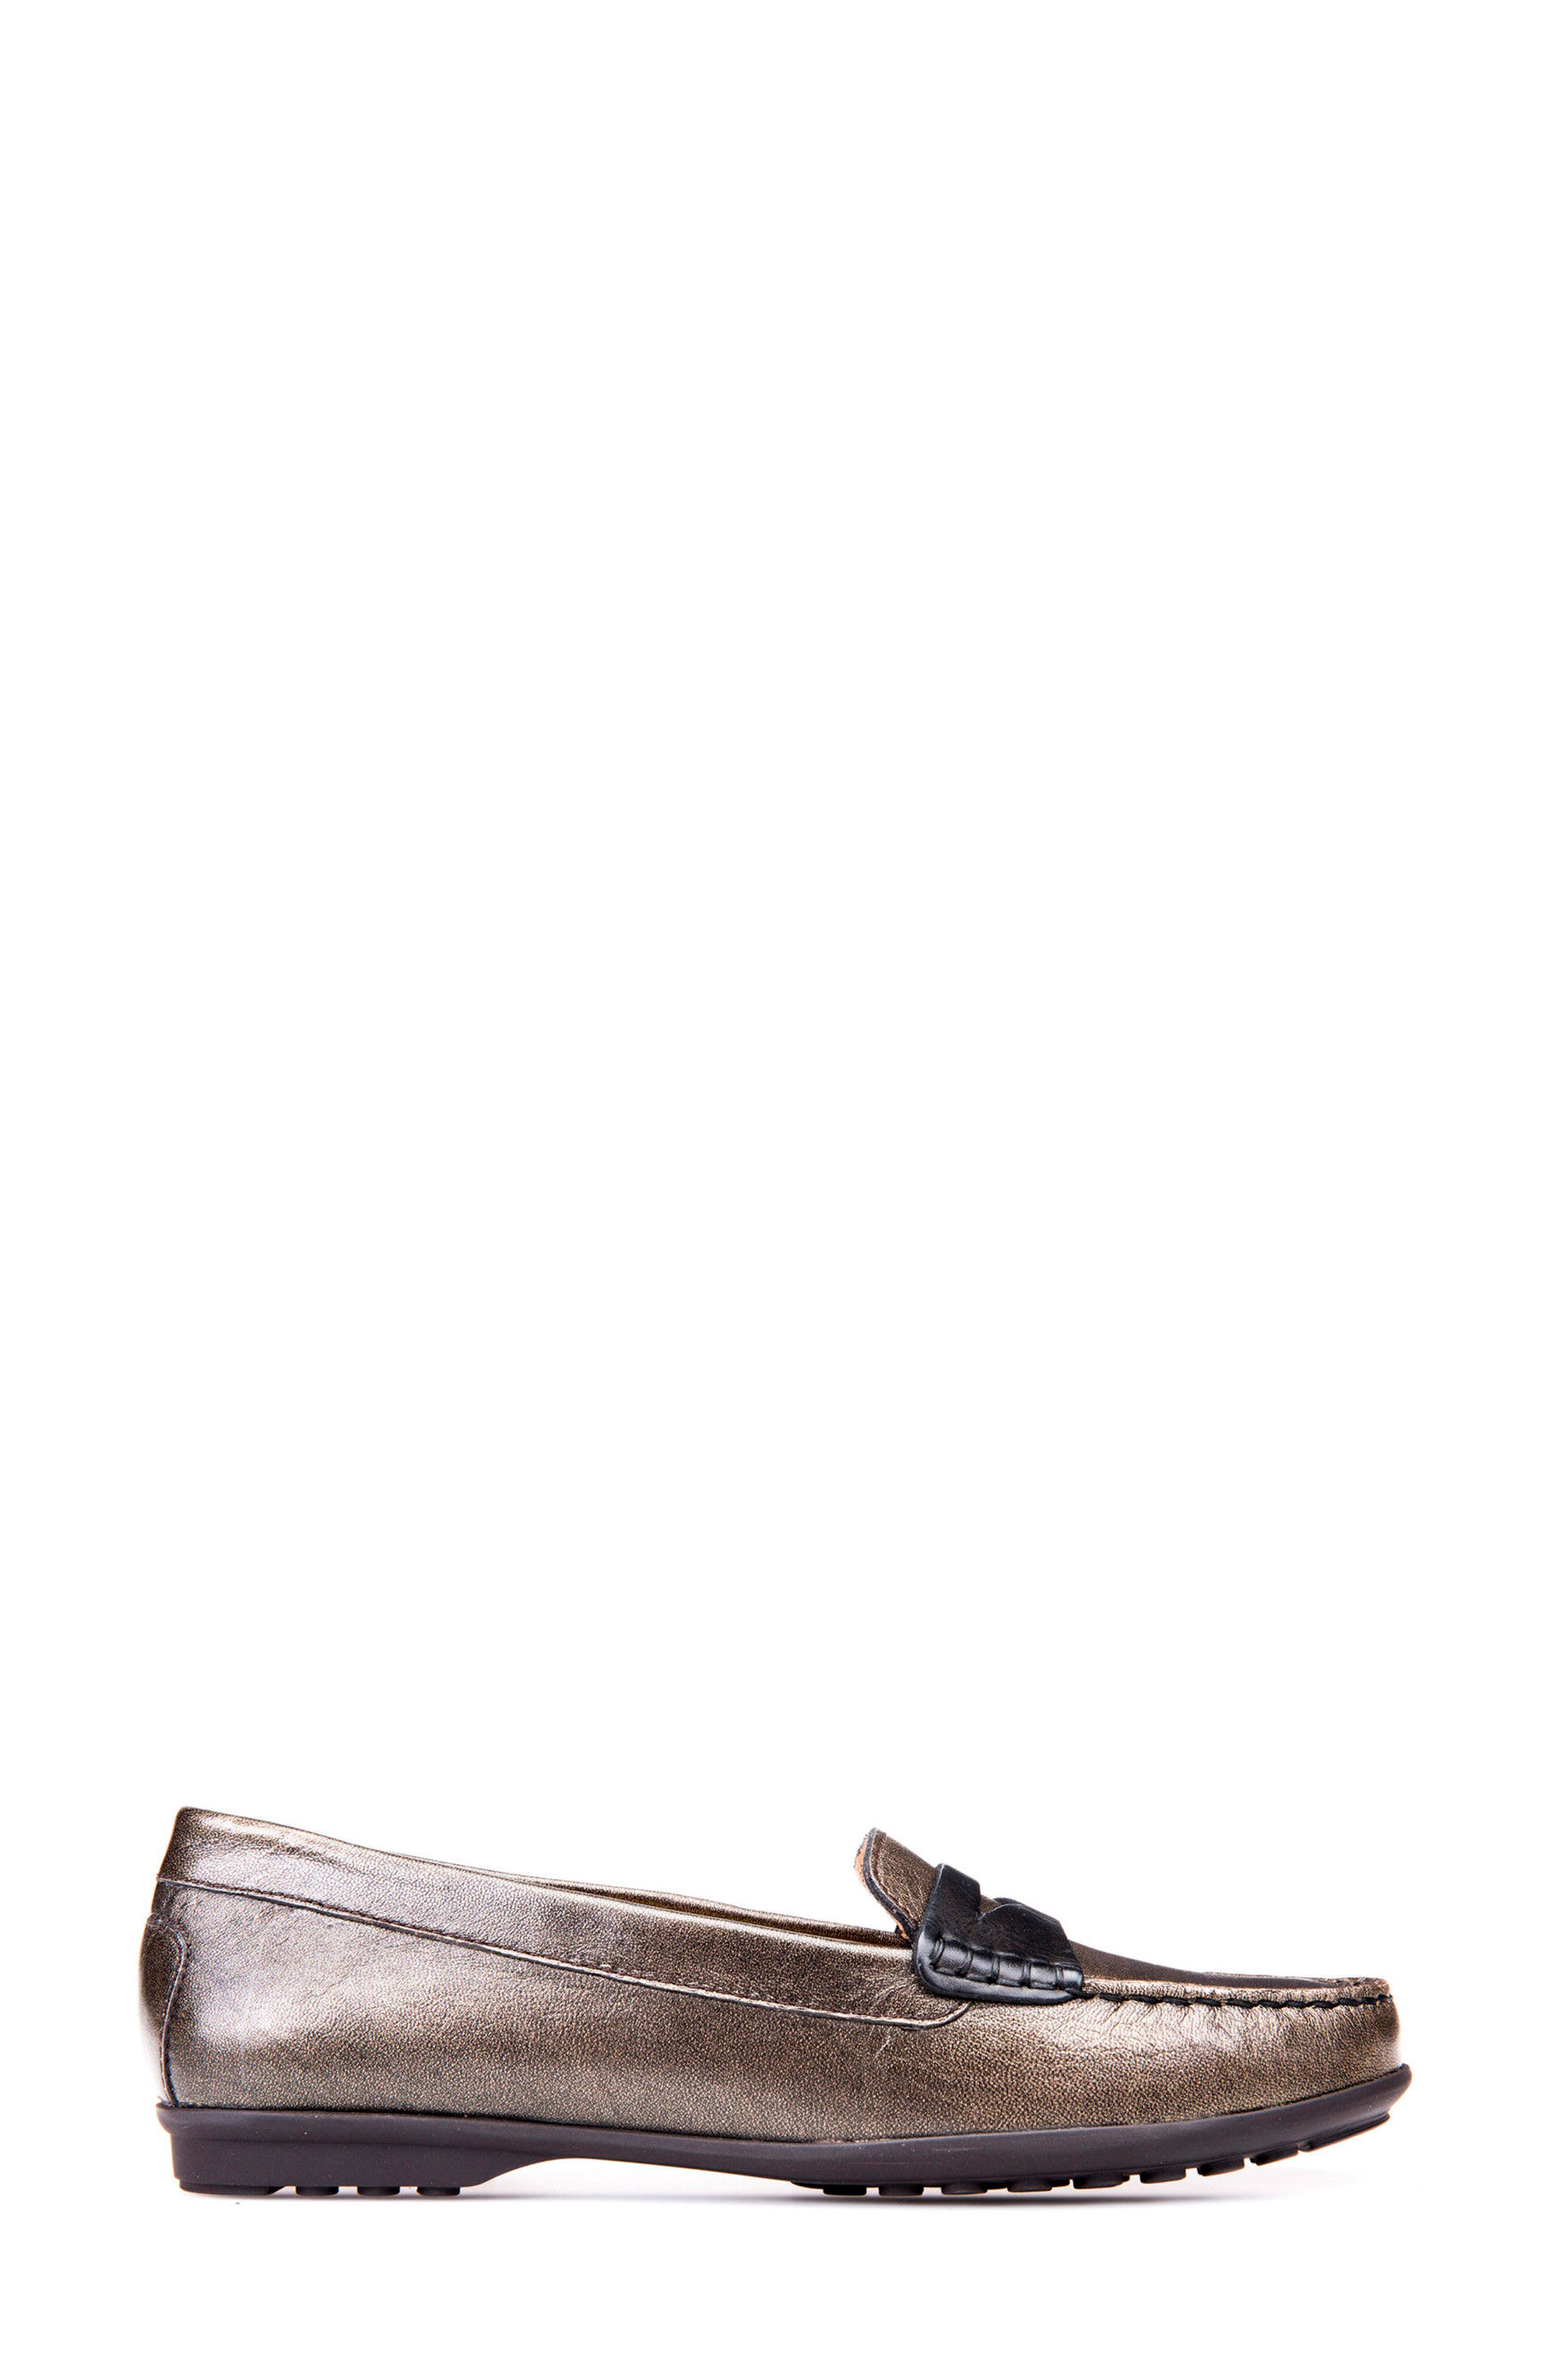 Alternate Image 4  - Geox Elidia 5 Penny Loafer (Women)